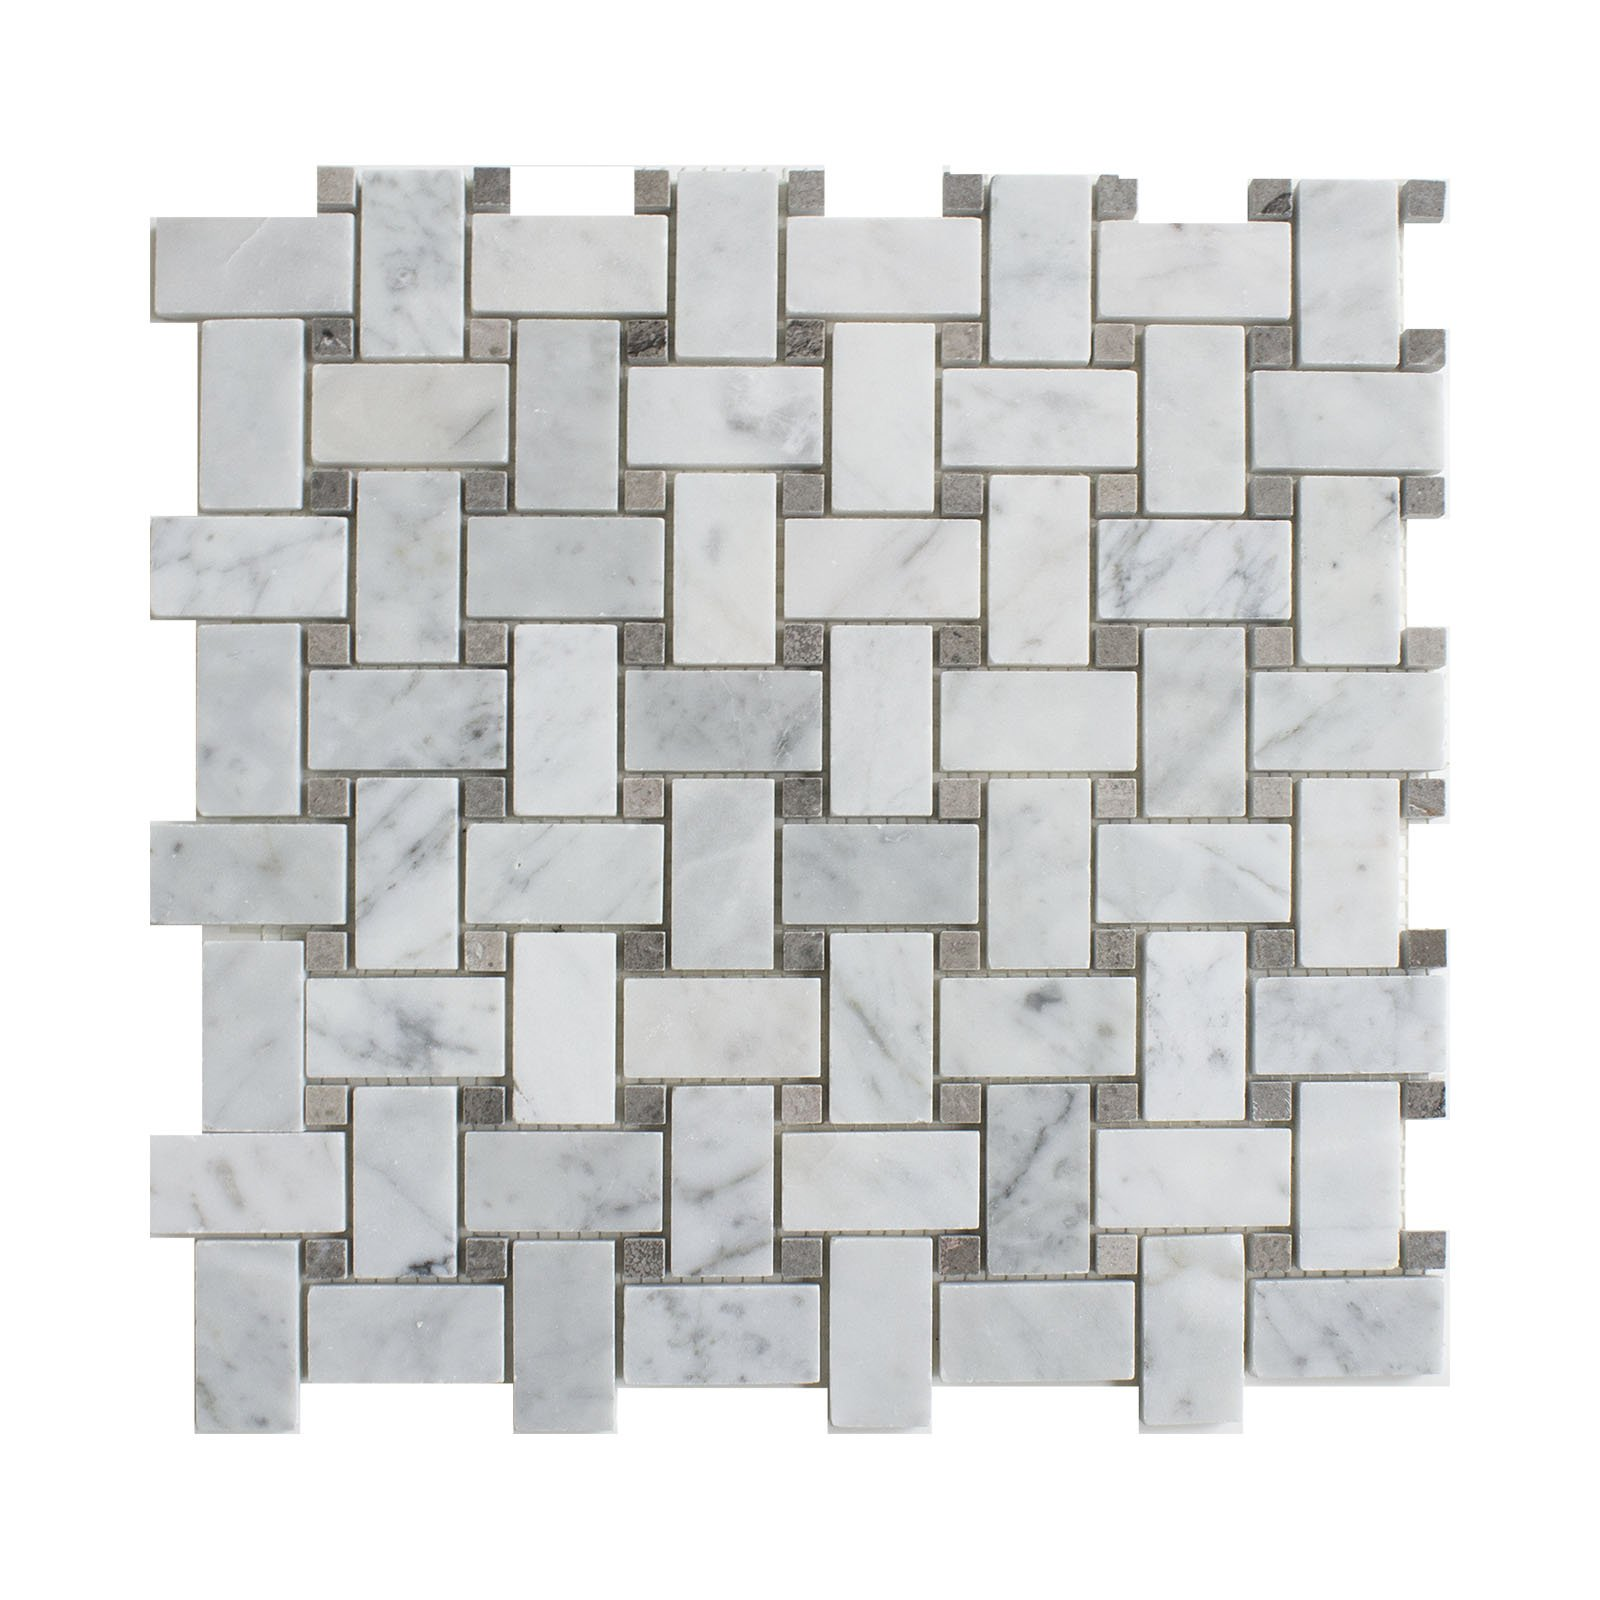 Carrara White Marble Mosaic Tile, CWMM1WEA+G-P, Chip Size 1''X2'' Basketweave with Grey Dot, 12''X12''X5/16, Polished (Box of 5 Sheets)